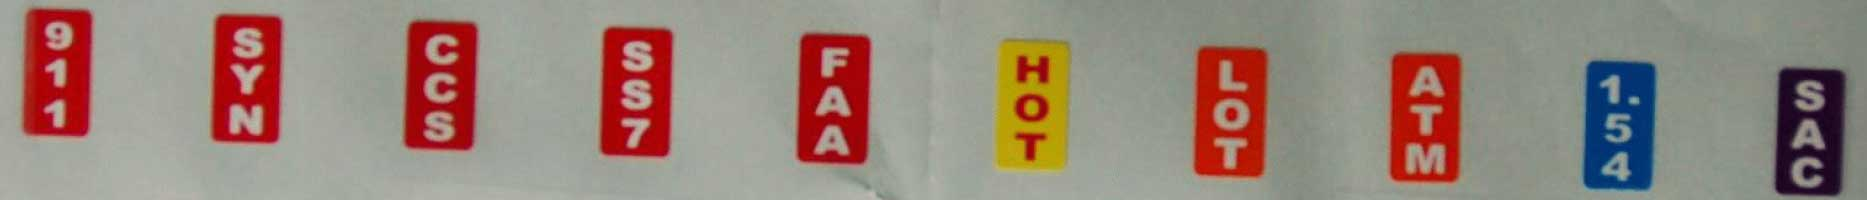 DSX PROTECTION & TAGGING DEVICE LABELS TYPE B C D